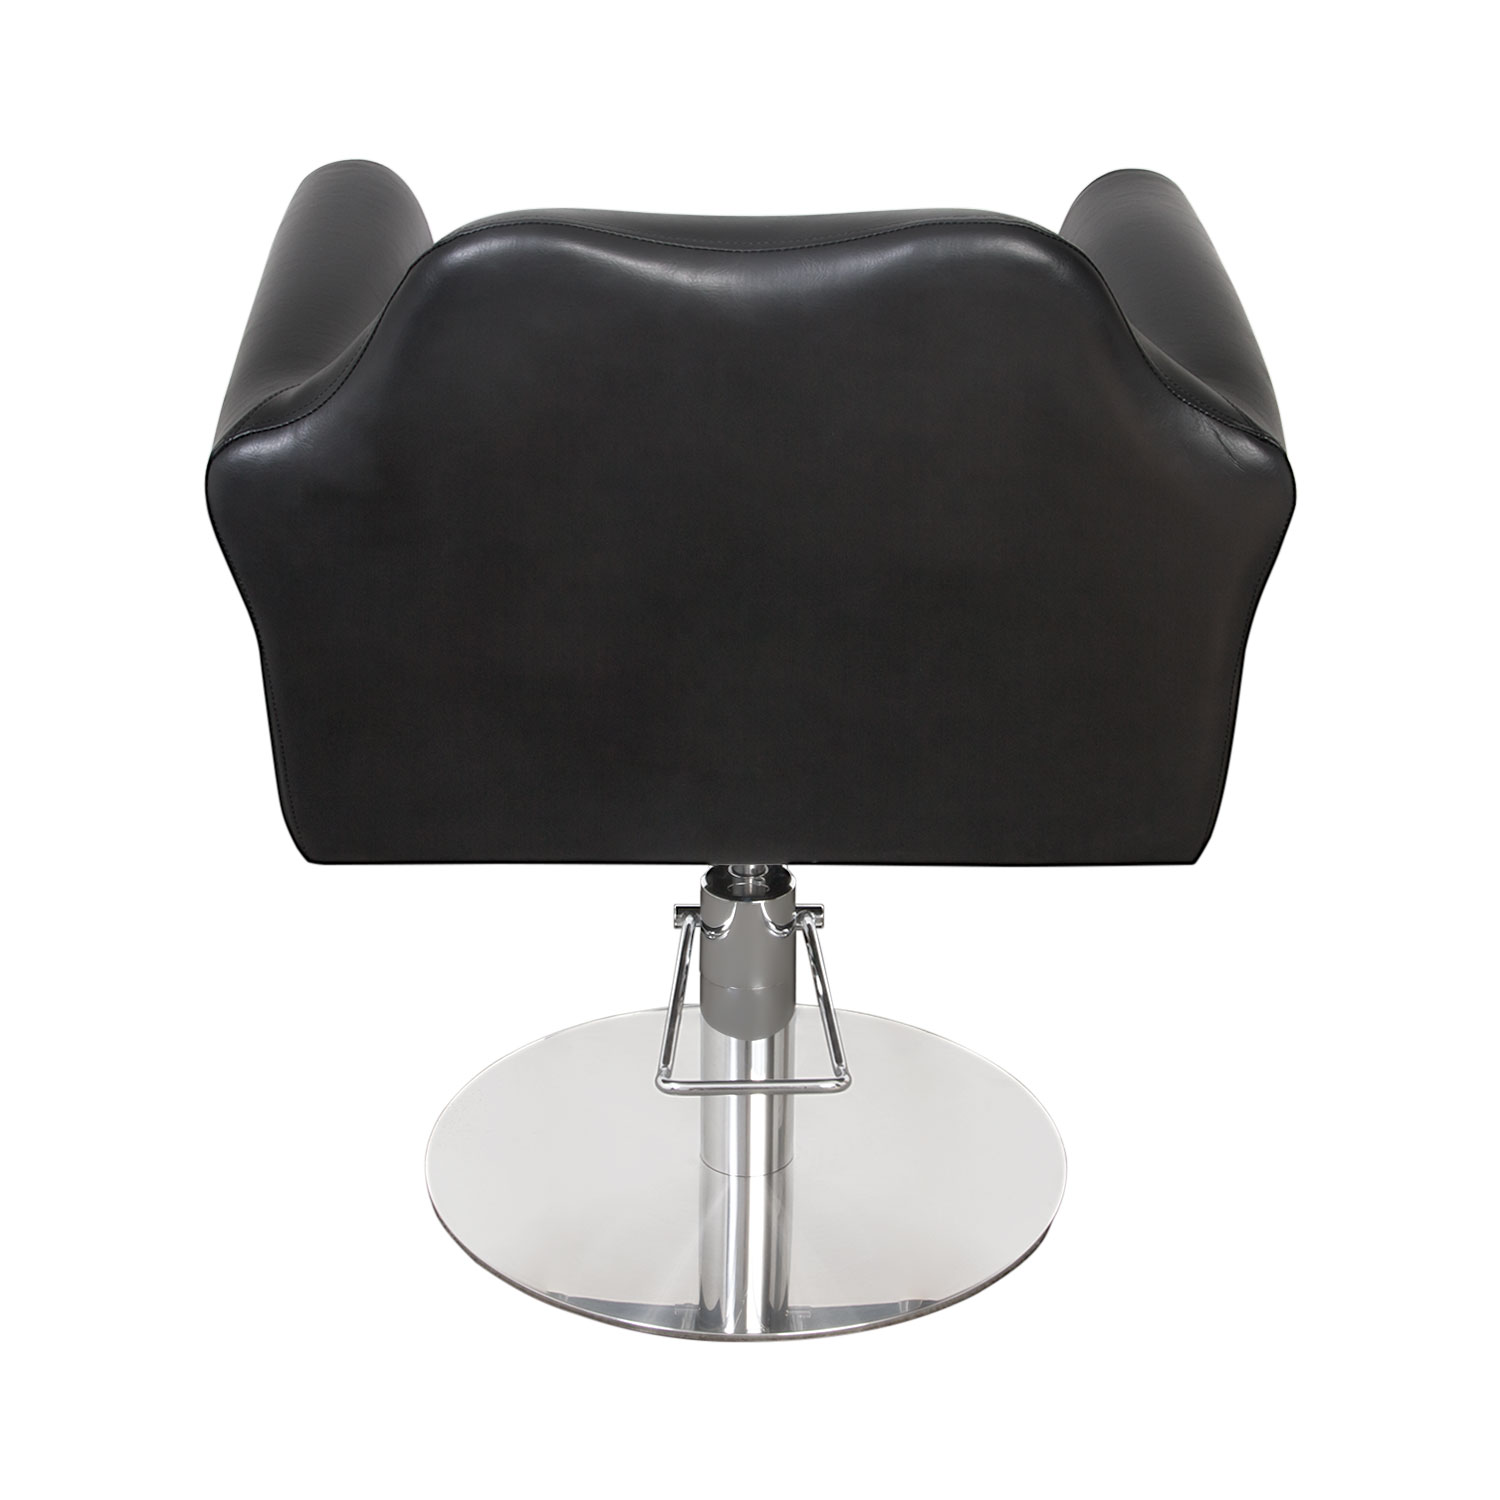 Colton Tufted Hair Salon Chair alternative product image 2